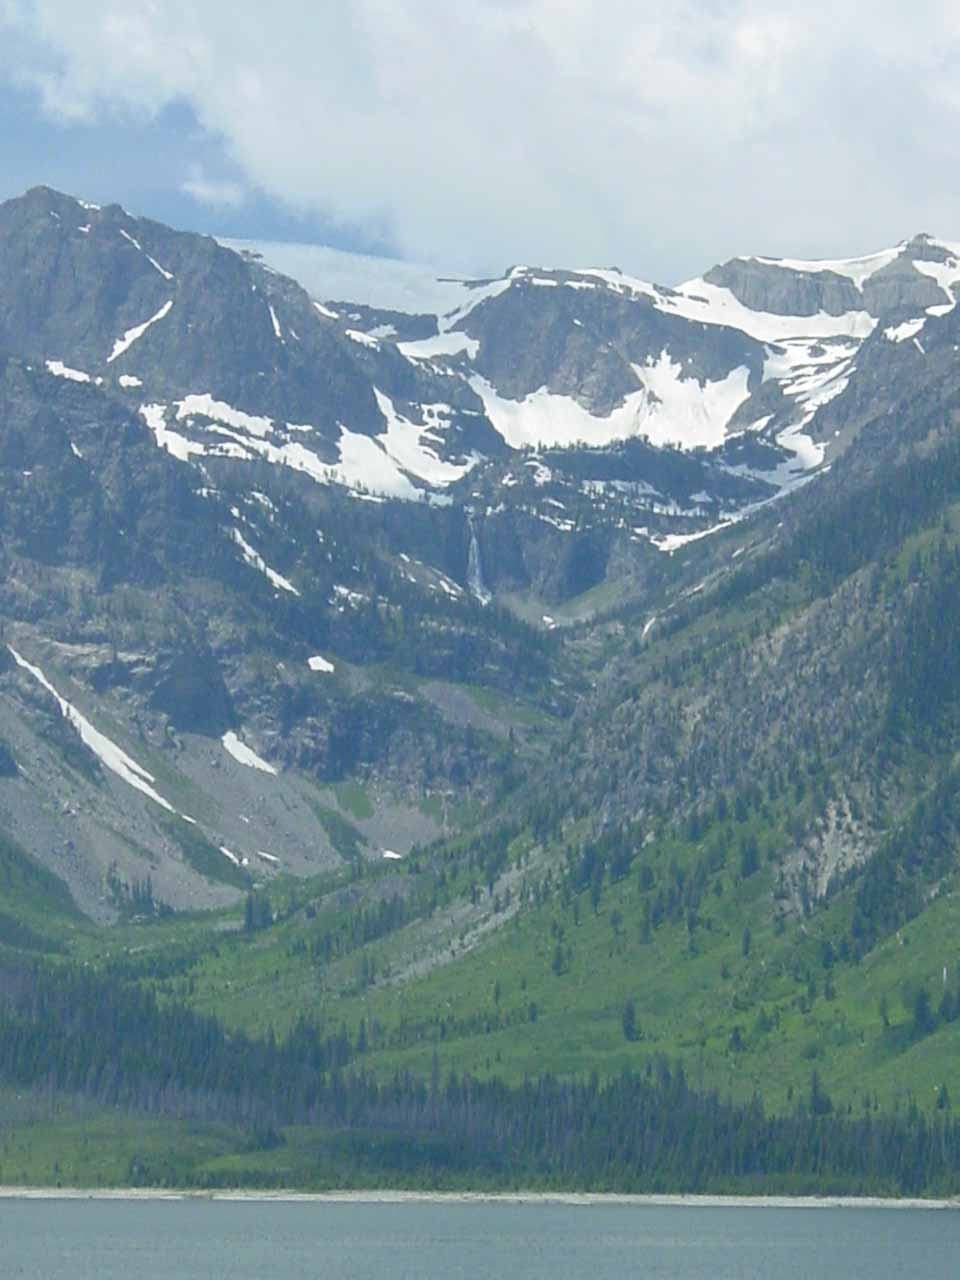 View of just Wilderness Falls from a different part of the Colter Bay complex with Jackson Lake in the foreground